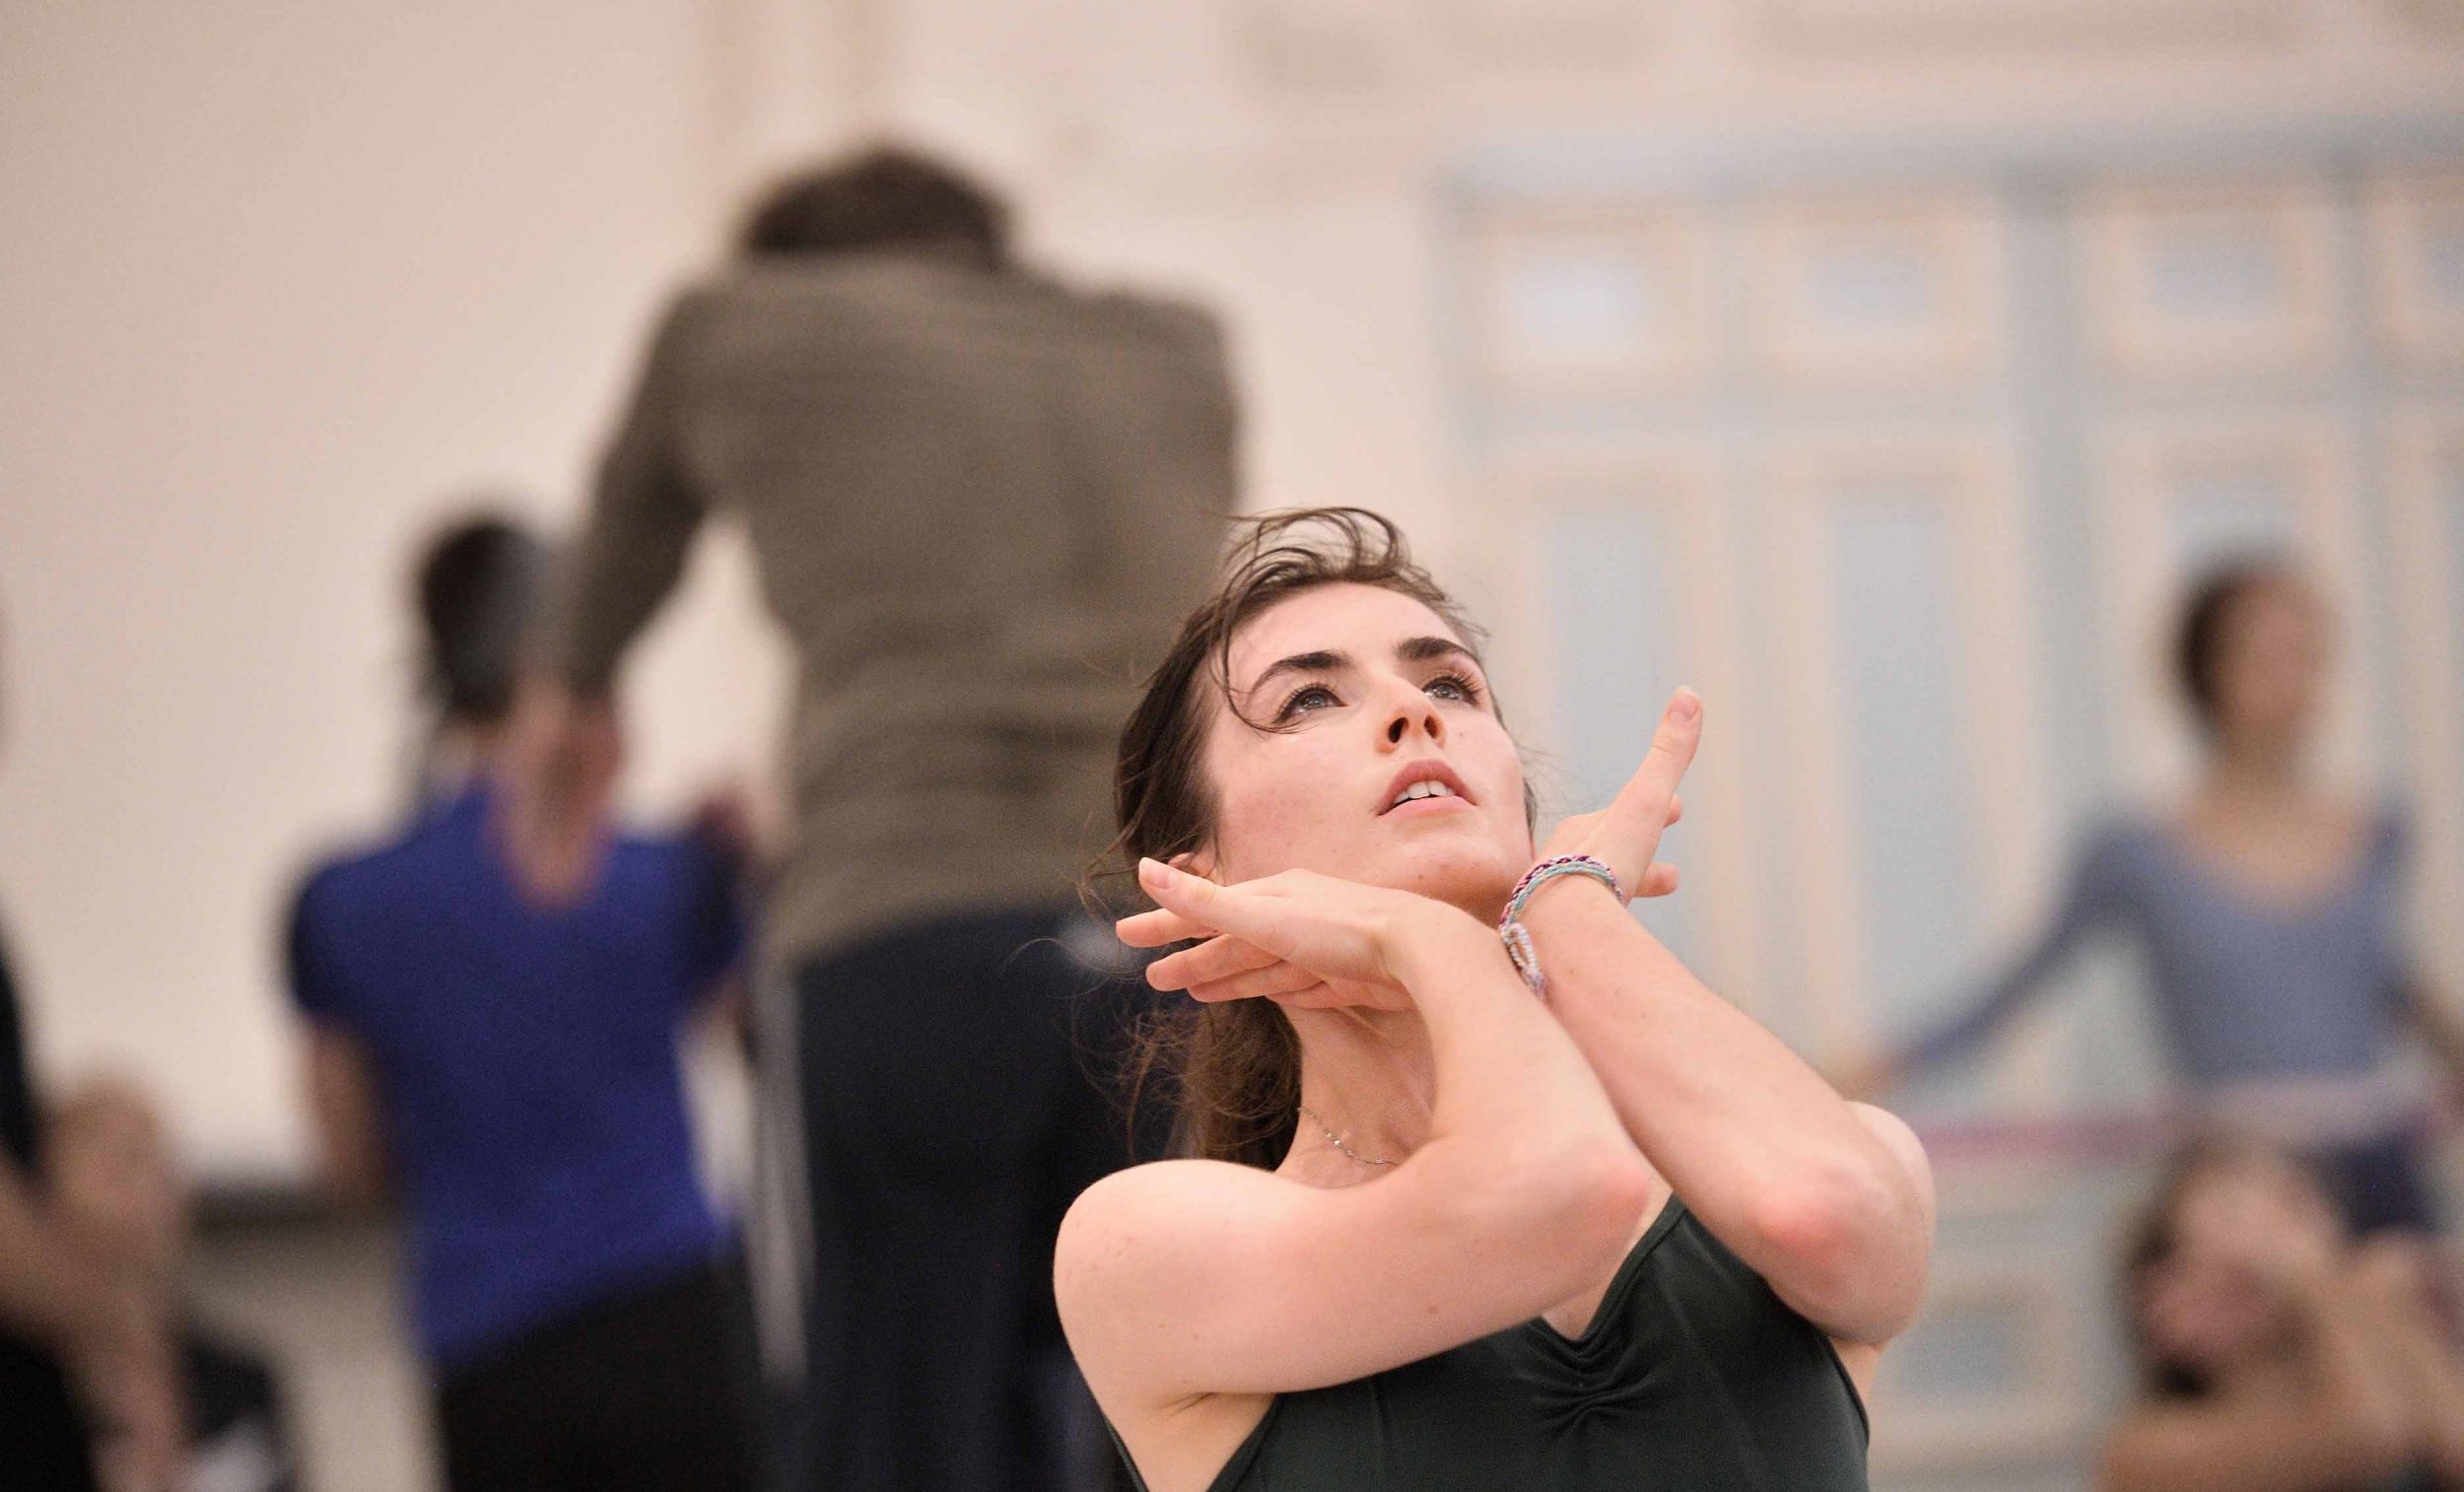 Connie-Vowles-rehearsing-Akram-Khan's-Giselle-©--Laurent-Liotardo